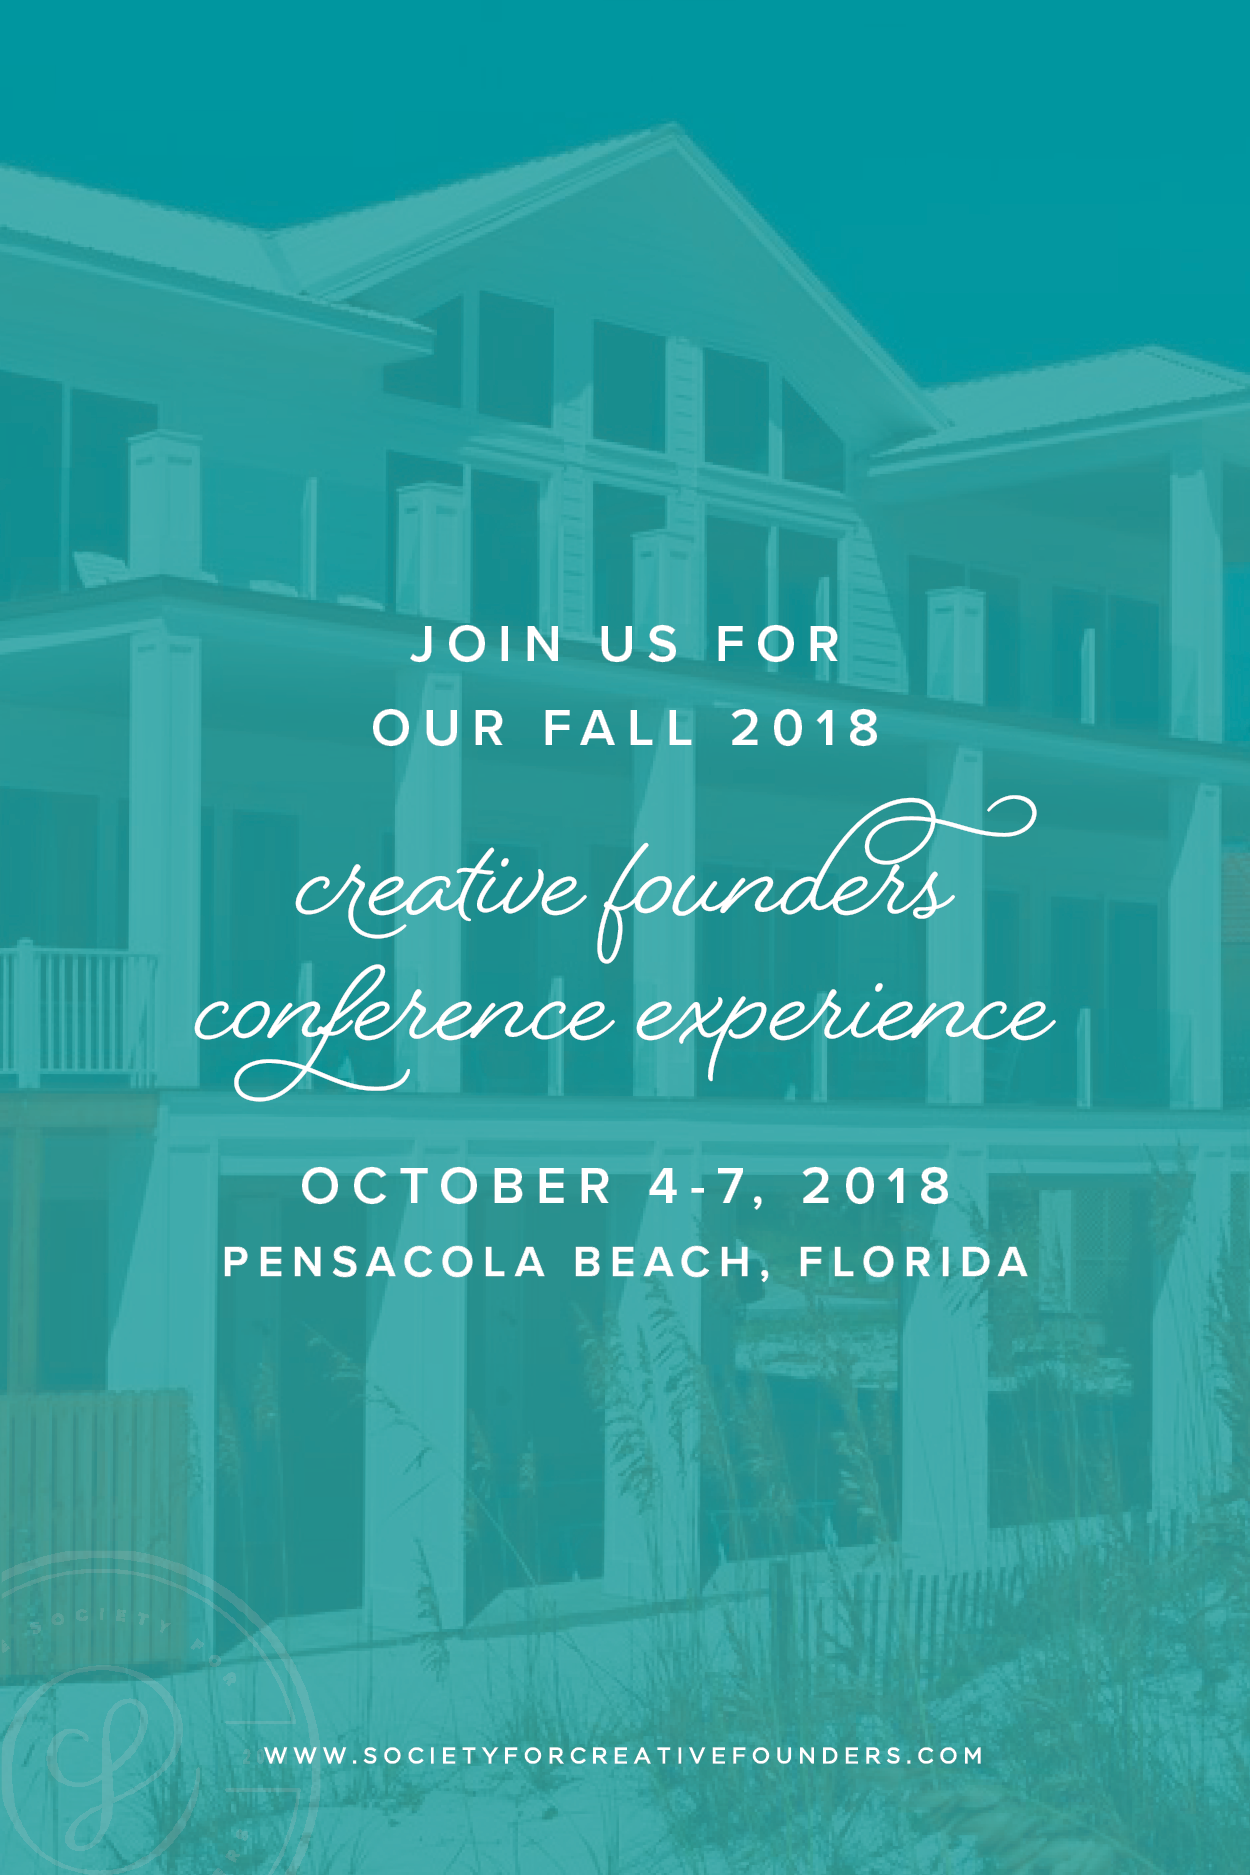 Join us for our Fall 2018 Creative Founders Conference!